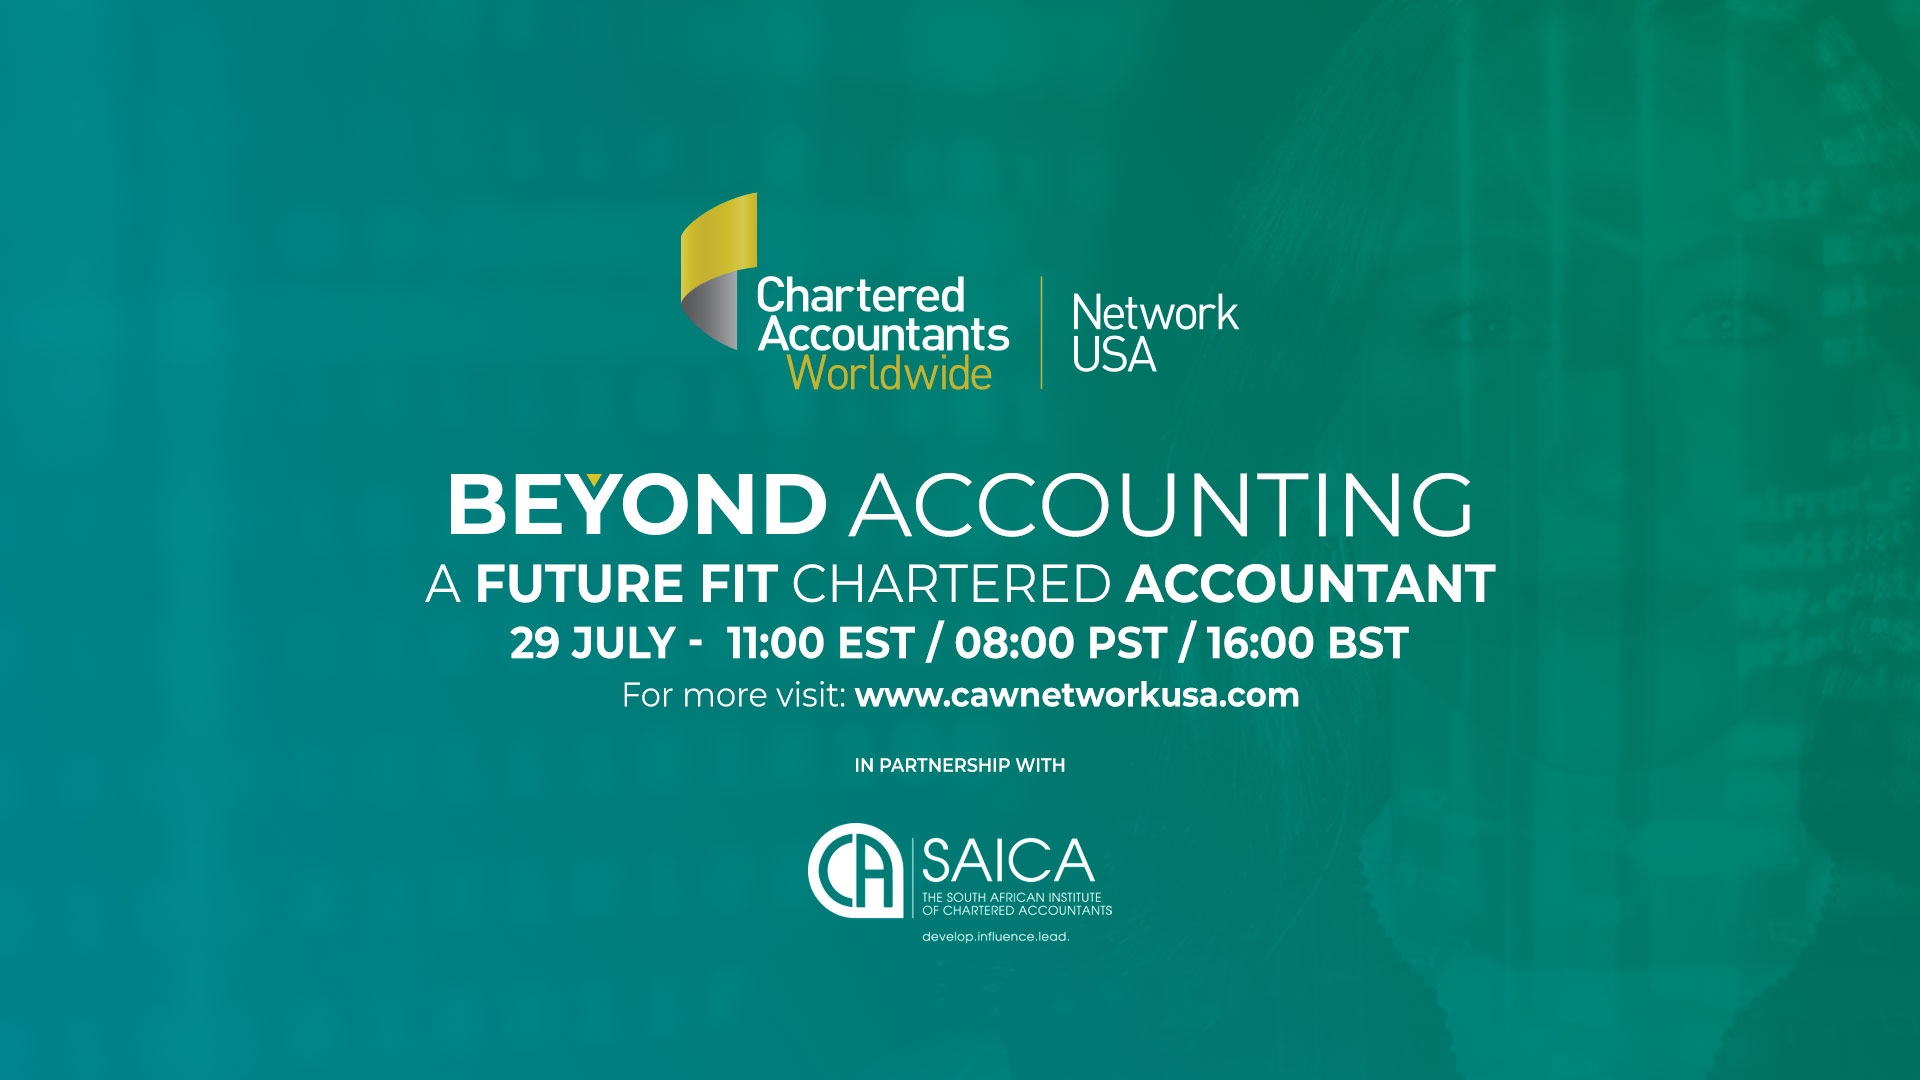 Beyond Accounting A Future Fit Chartered Accountant